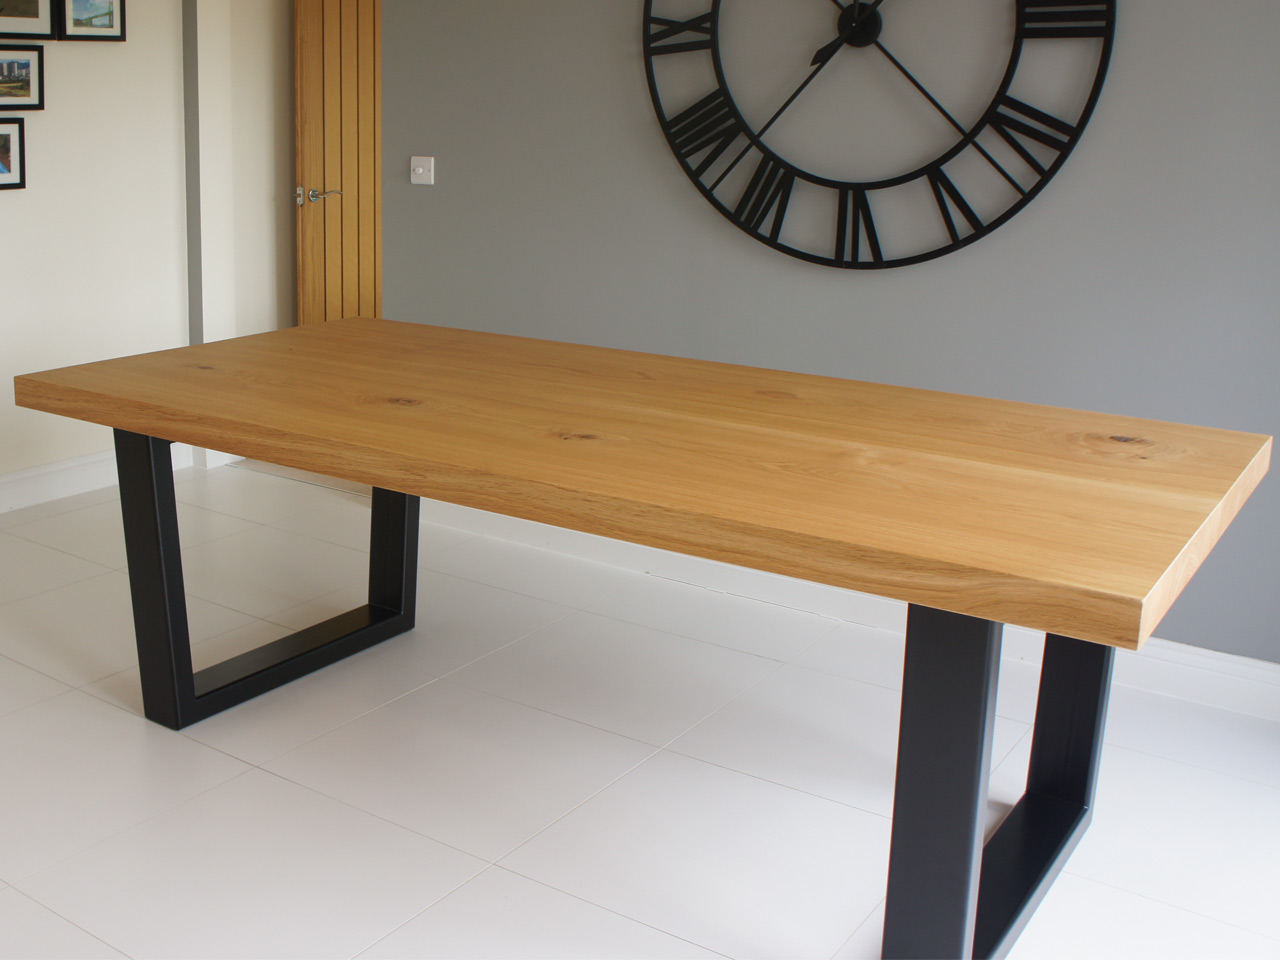 abacus-tables-project-836-pic-5